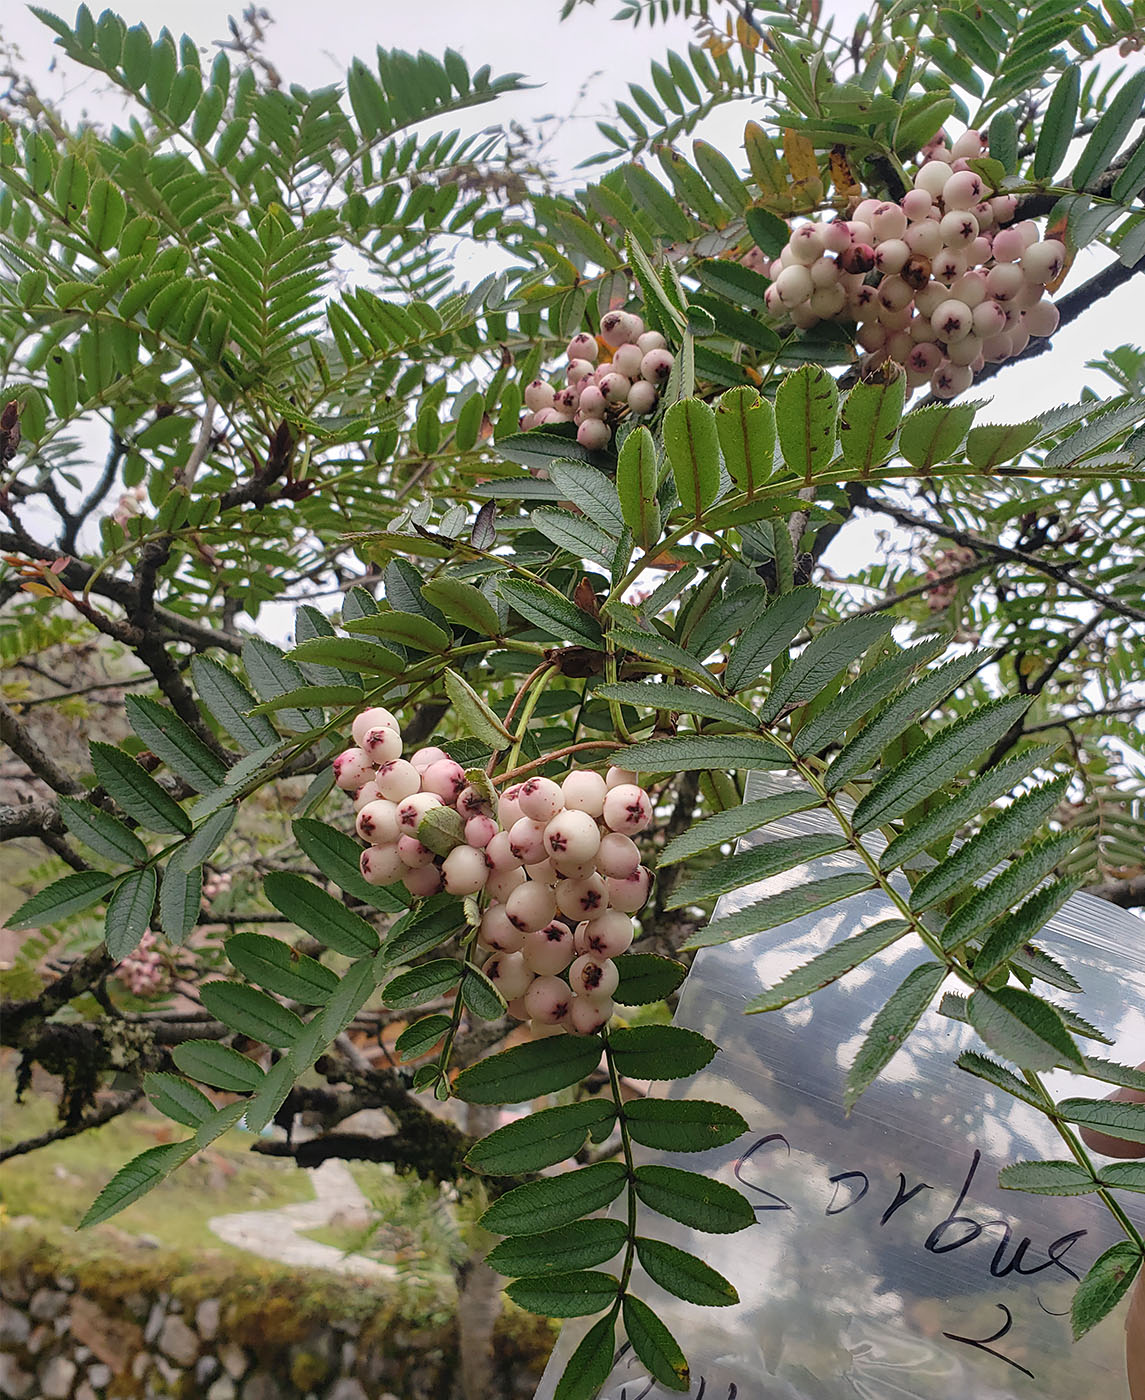 Sorbus sp., white fruits - W/O-9245